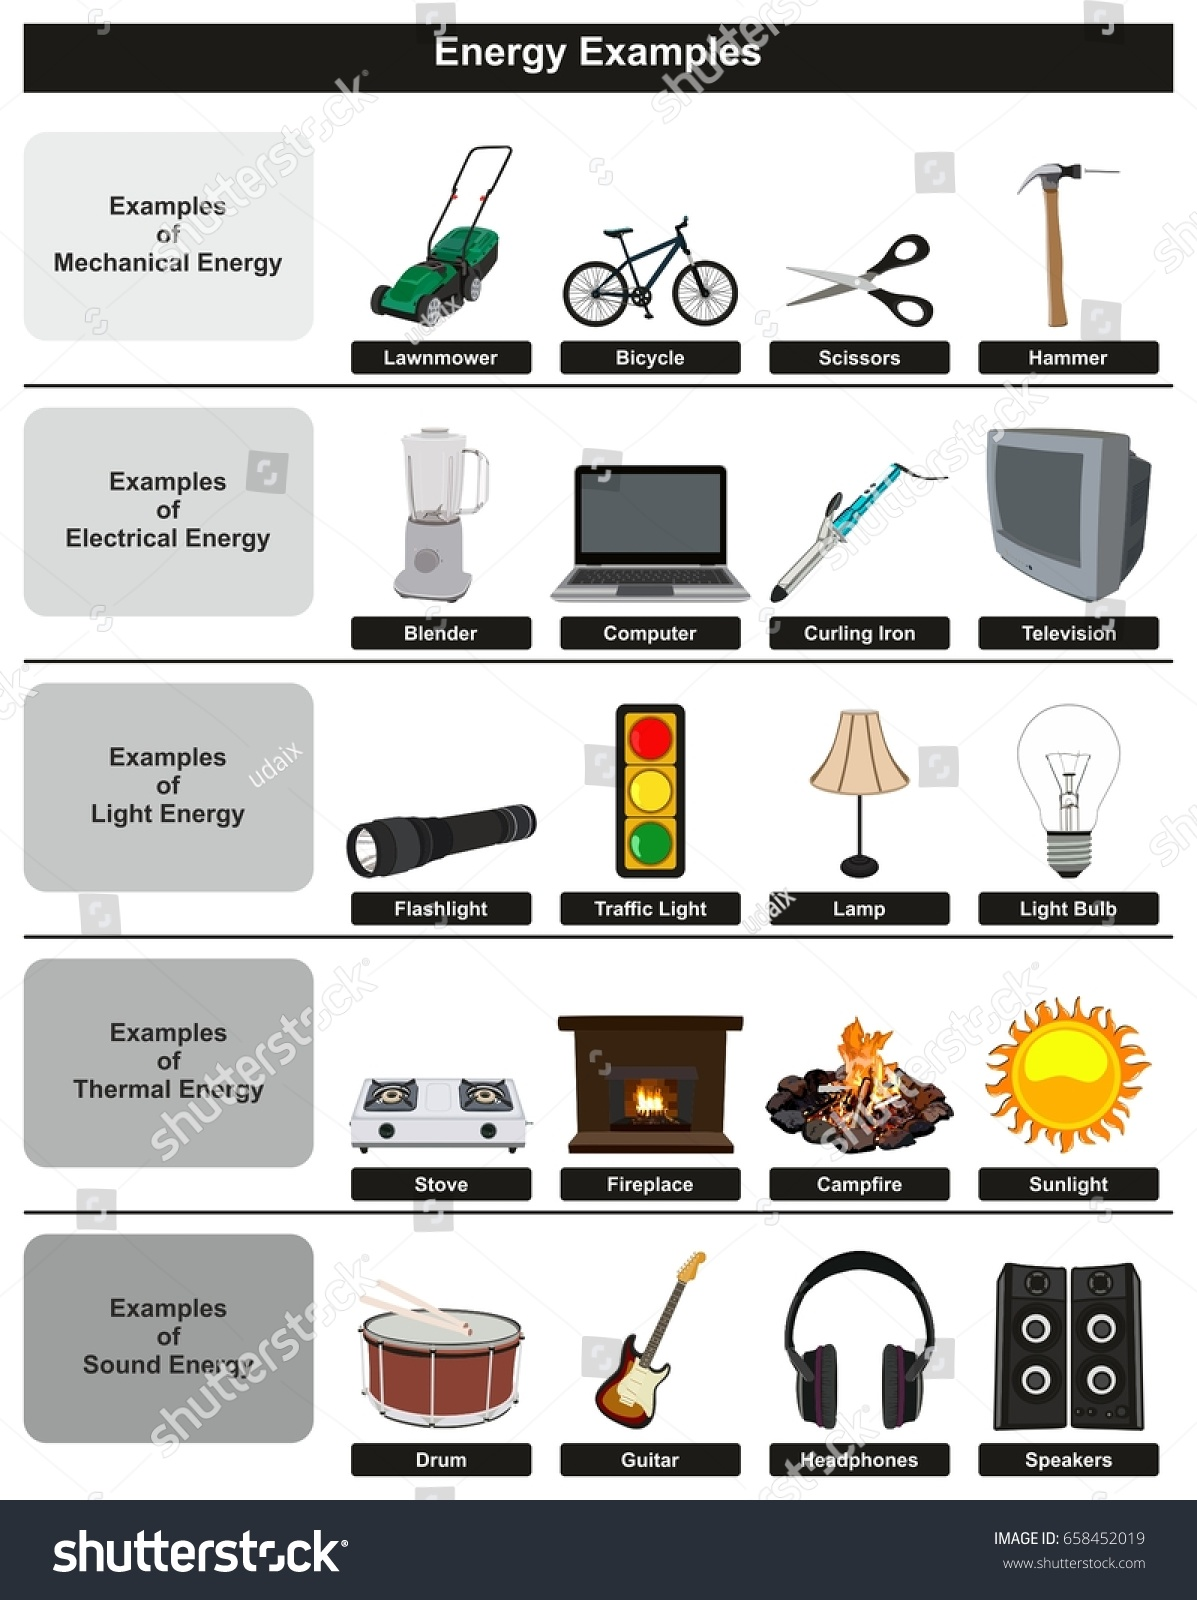 Energy Examples Infographic Diagram Including Most Stock Vector Mechanical Common Types Electrical Light Thermal And Sound For Physics